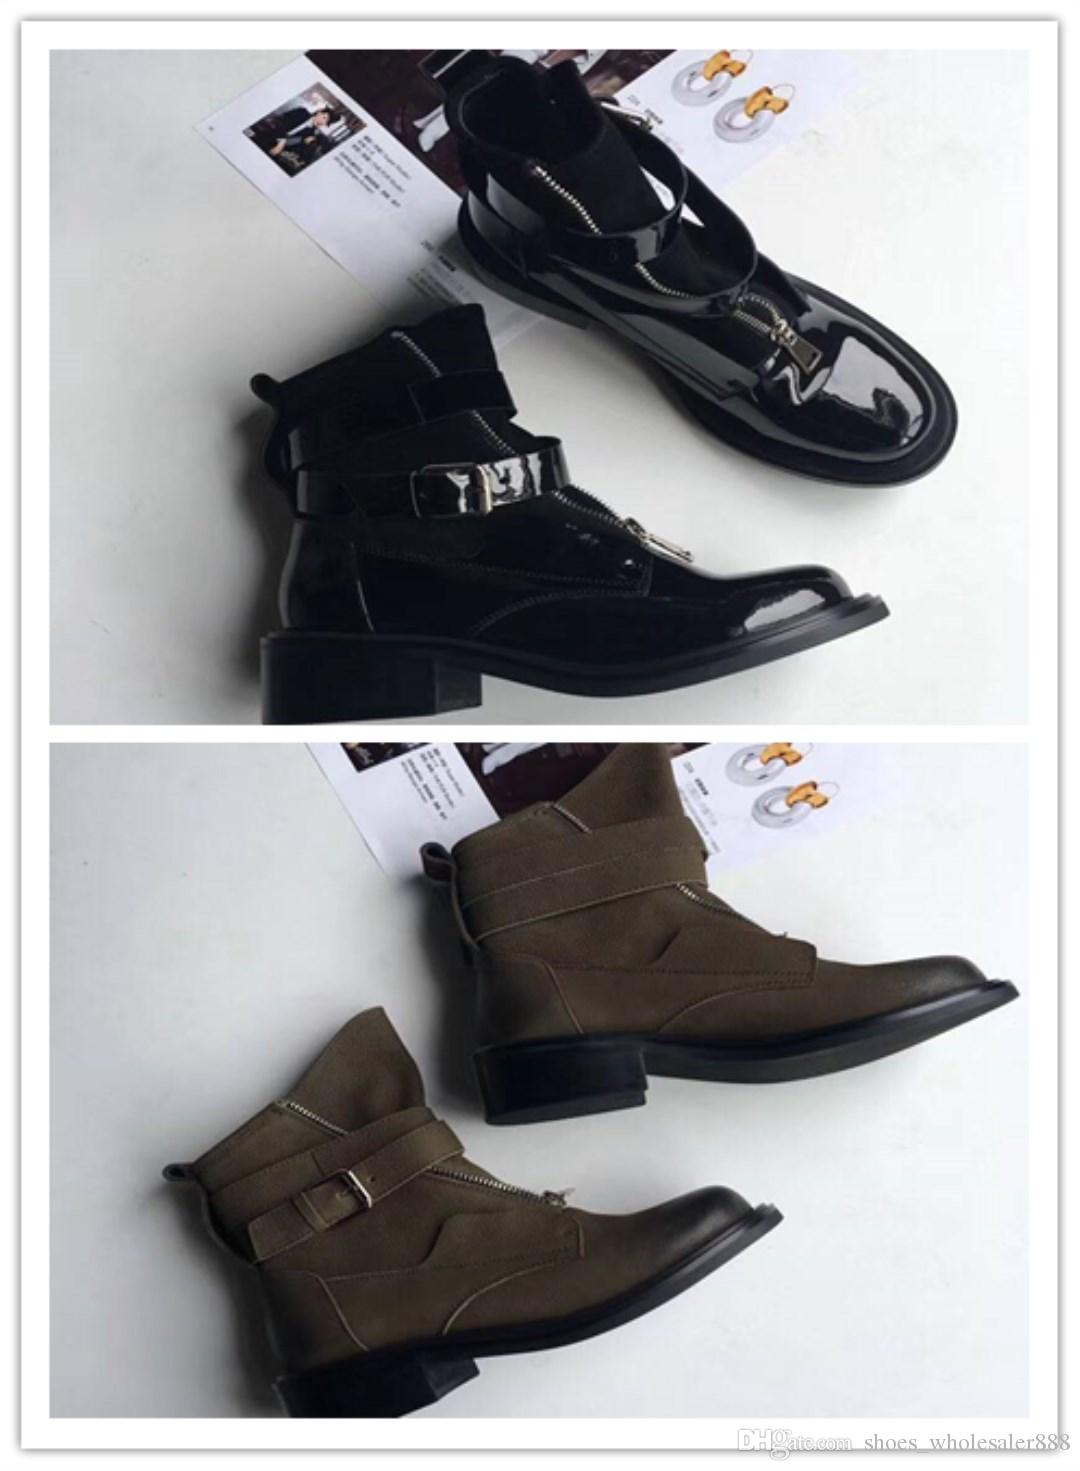 Original mold making top cowhide vamp Italy imports leather outsole The lining sheepskin women's low heel ankle boots